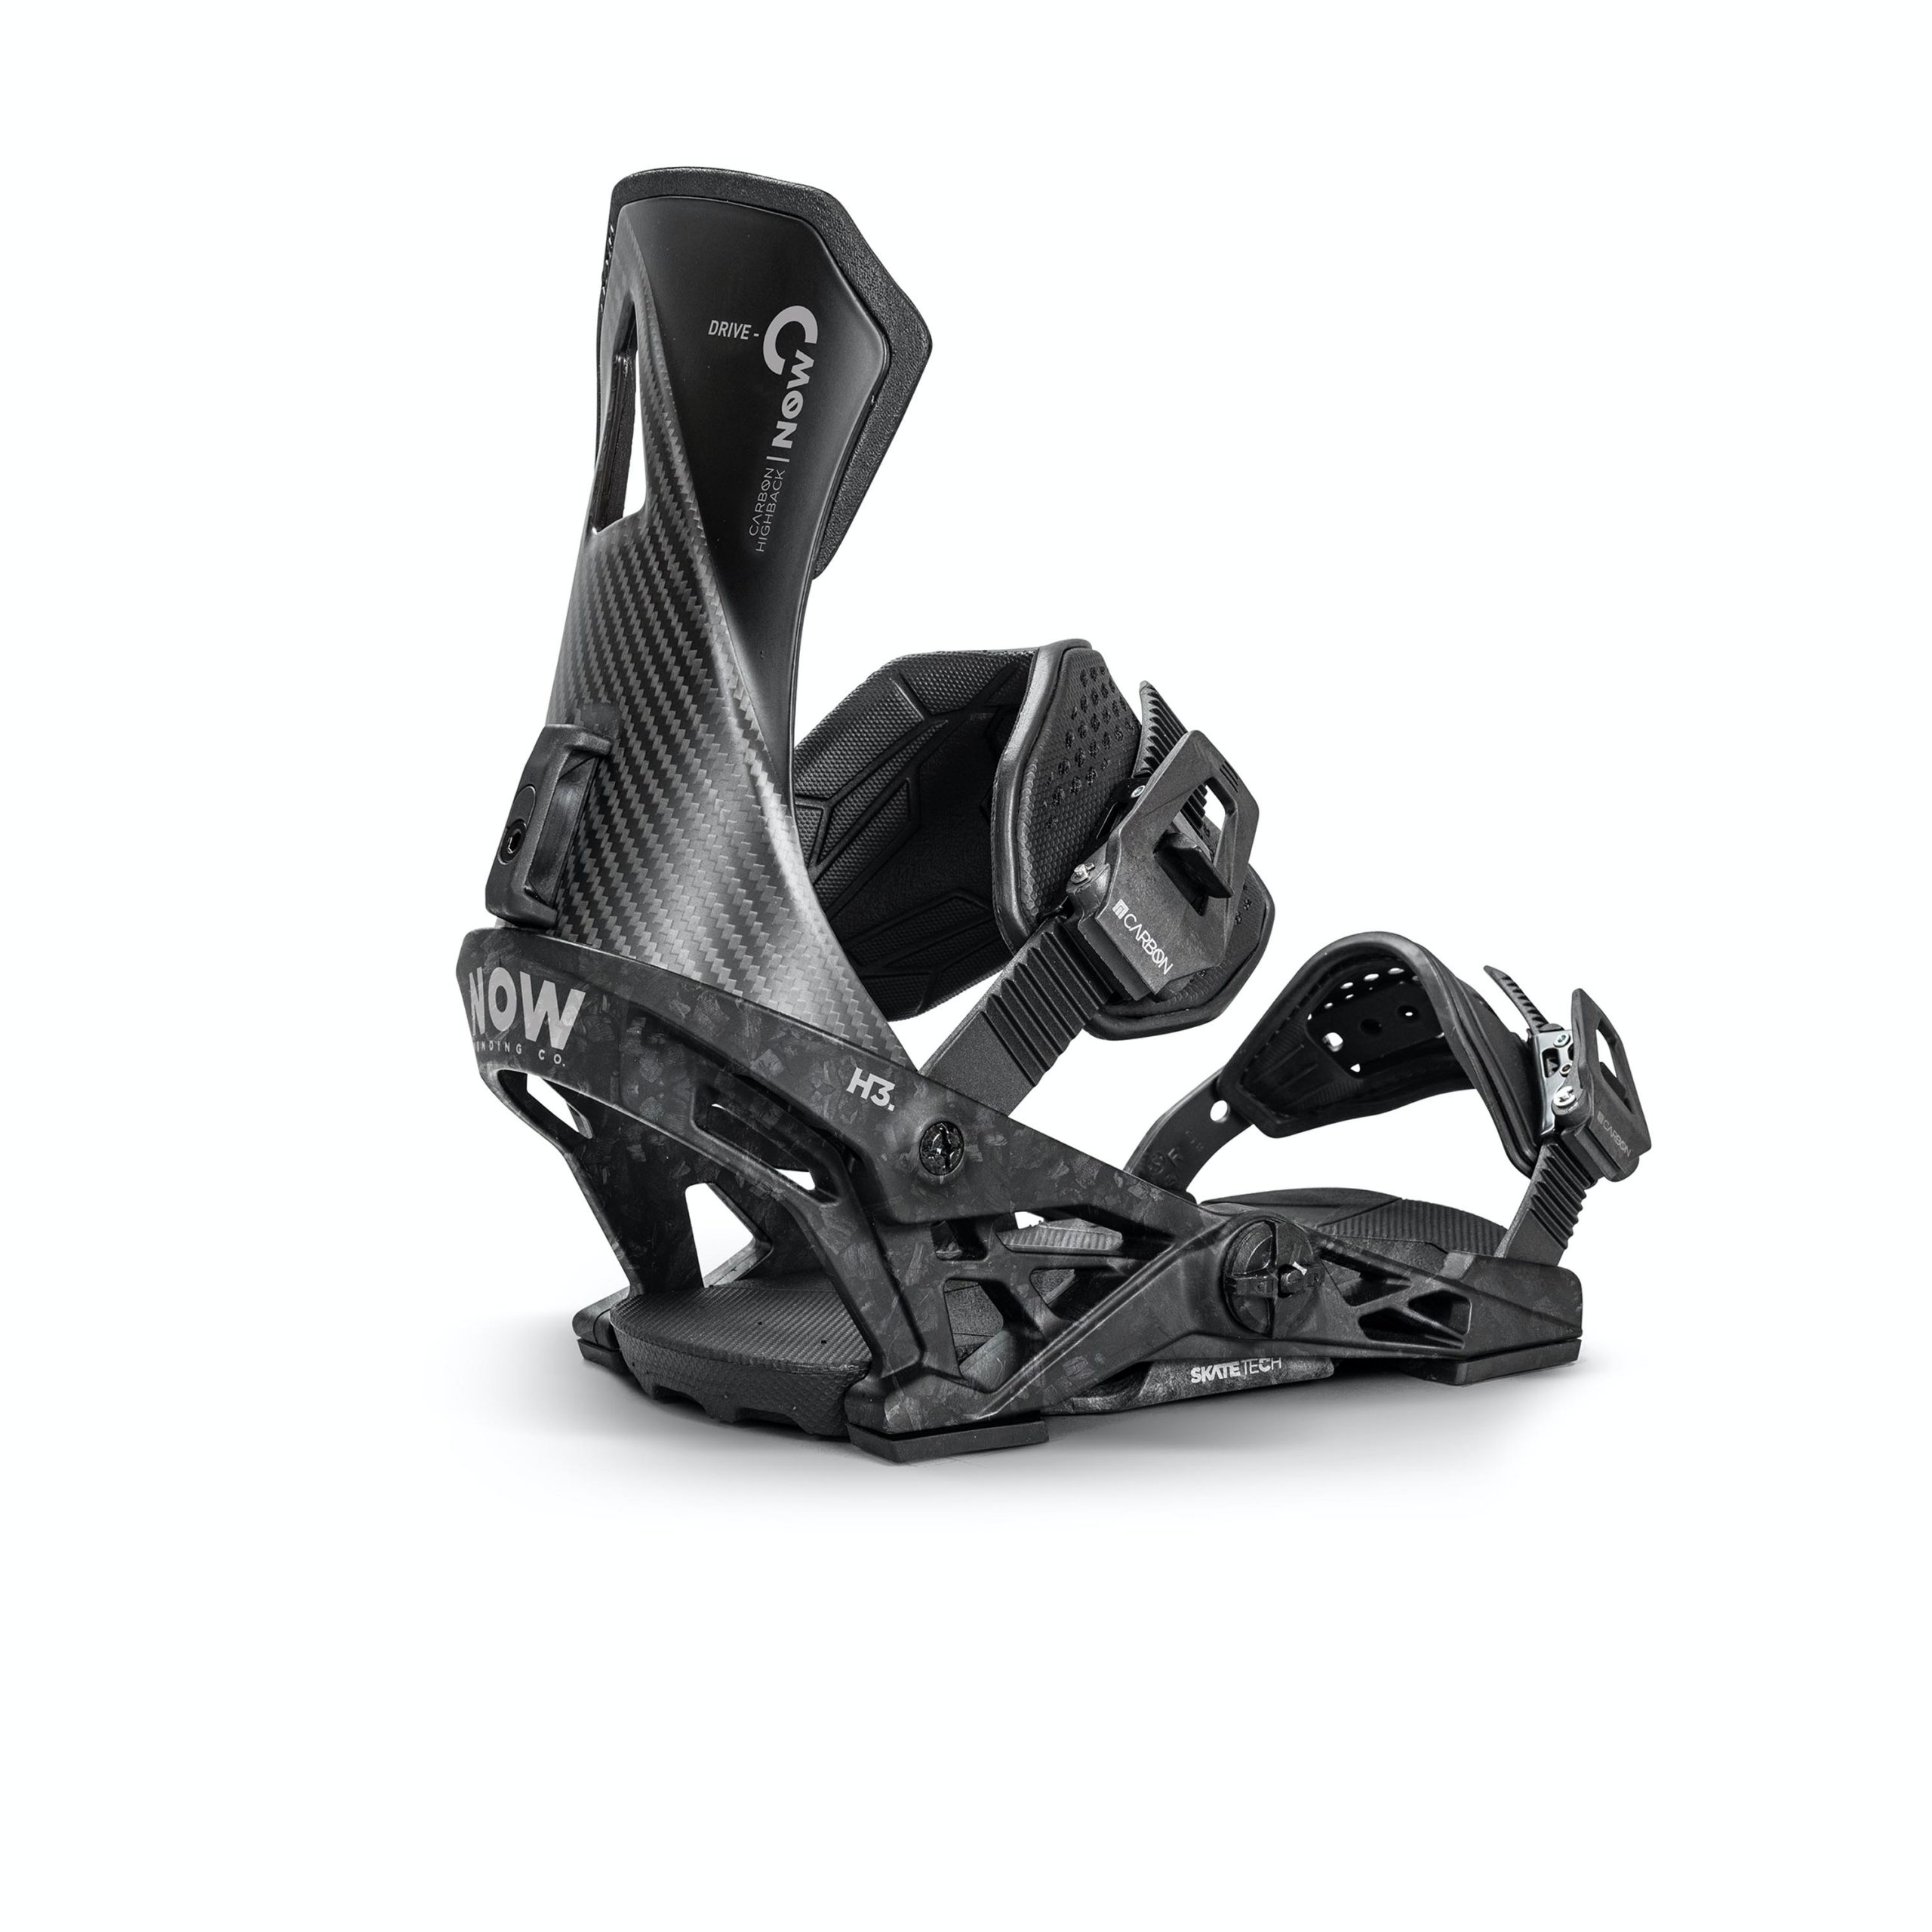 Now 21/22 Snowboard Bindings